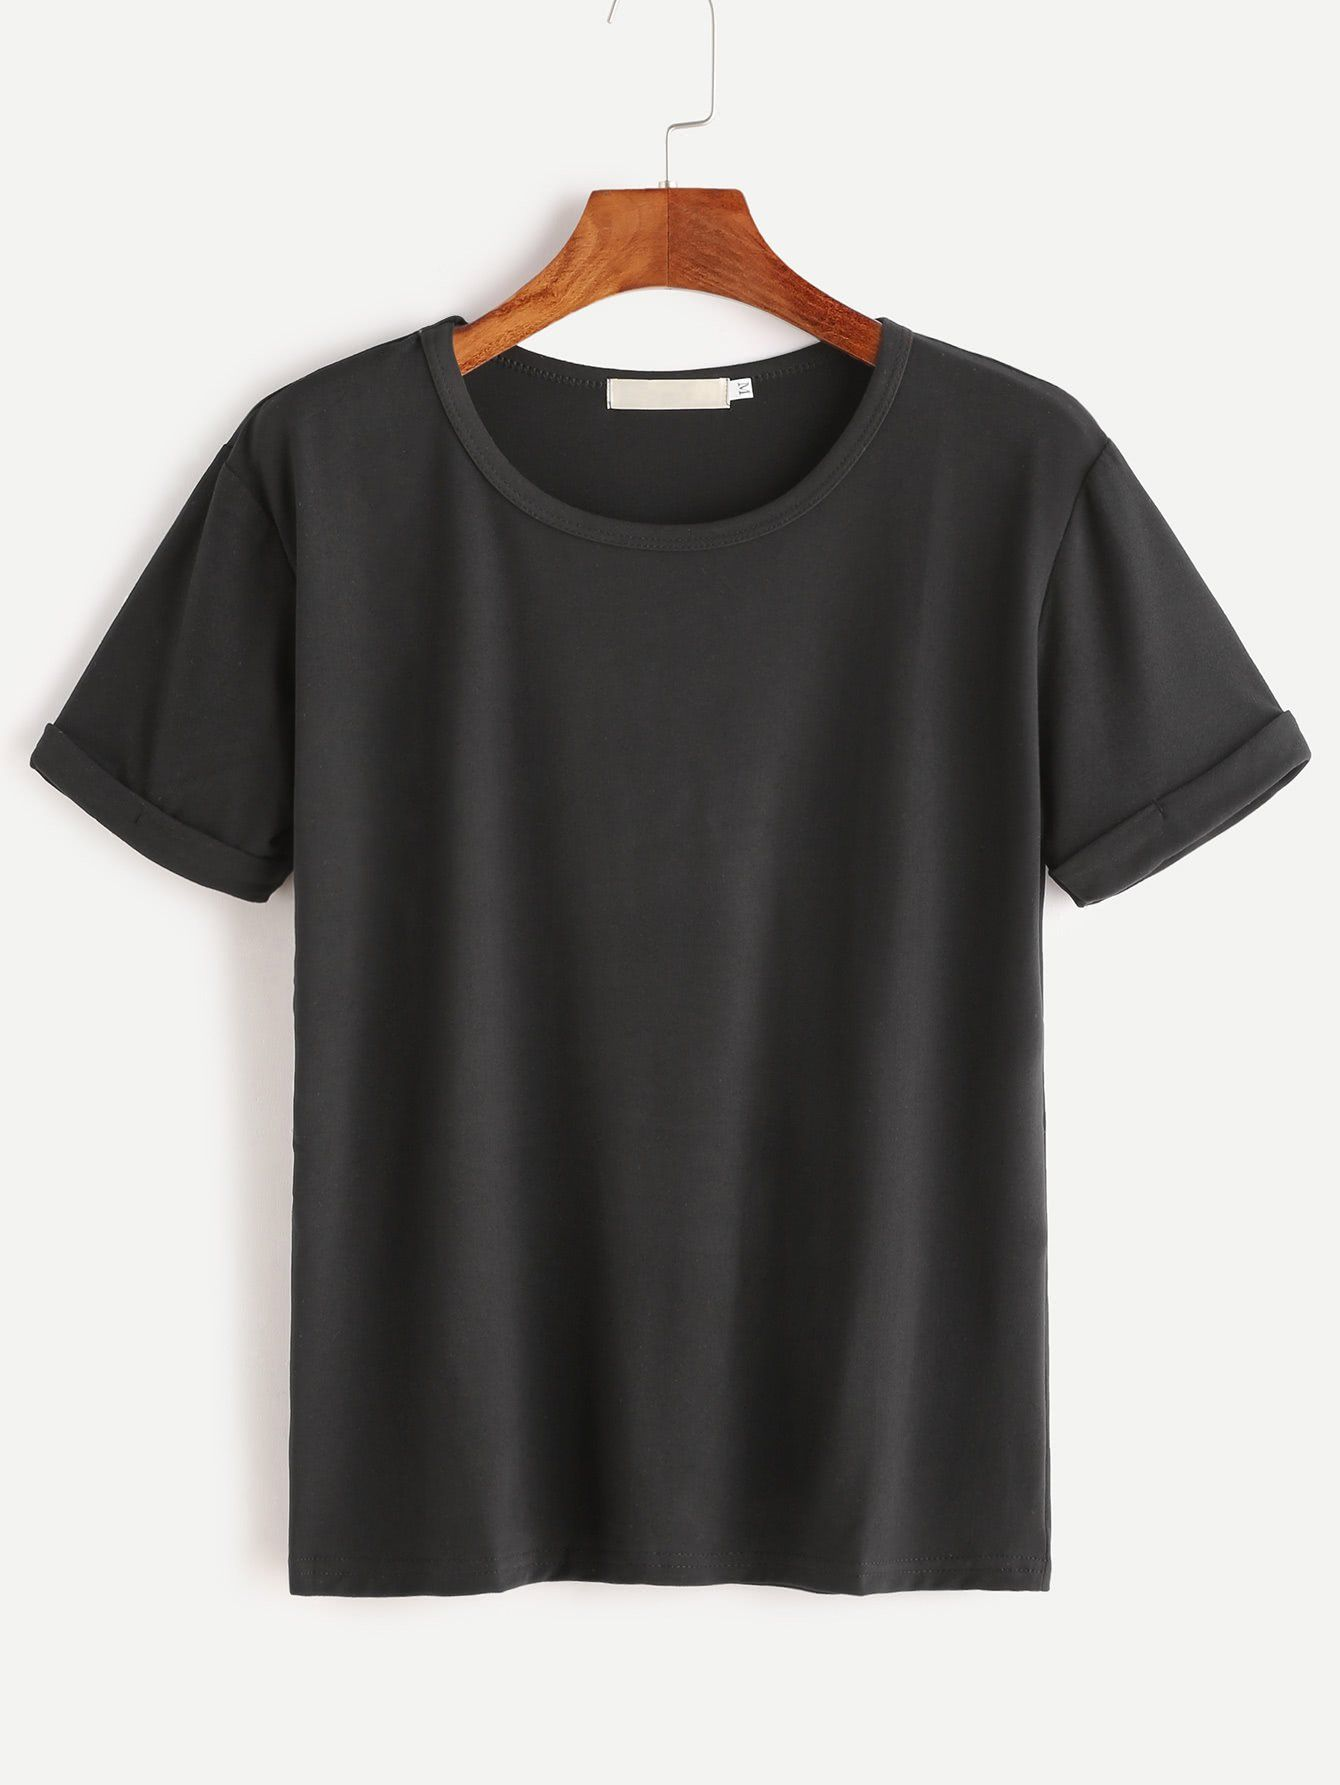 Black rolled sleeve basic tshirt how to roll sleeves